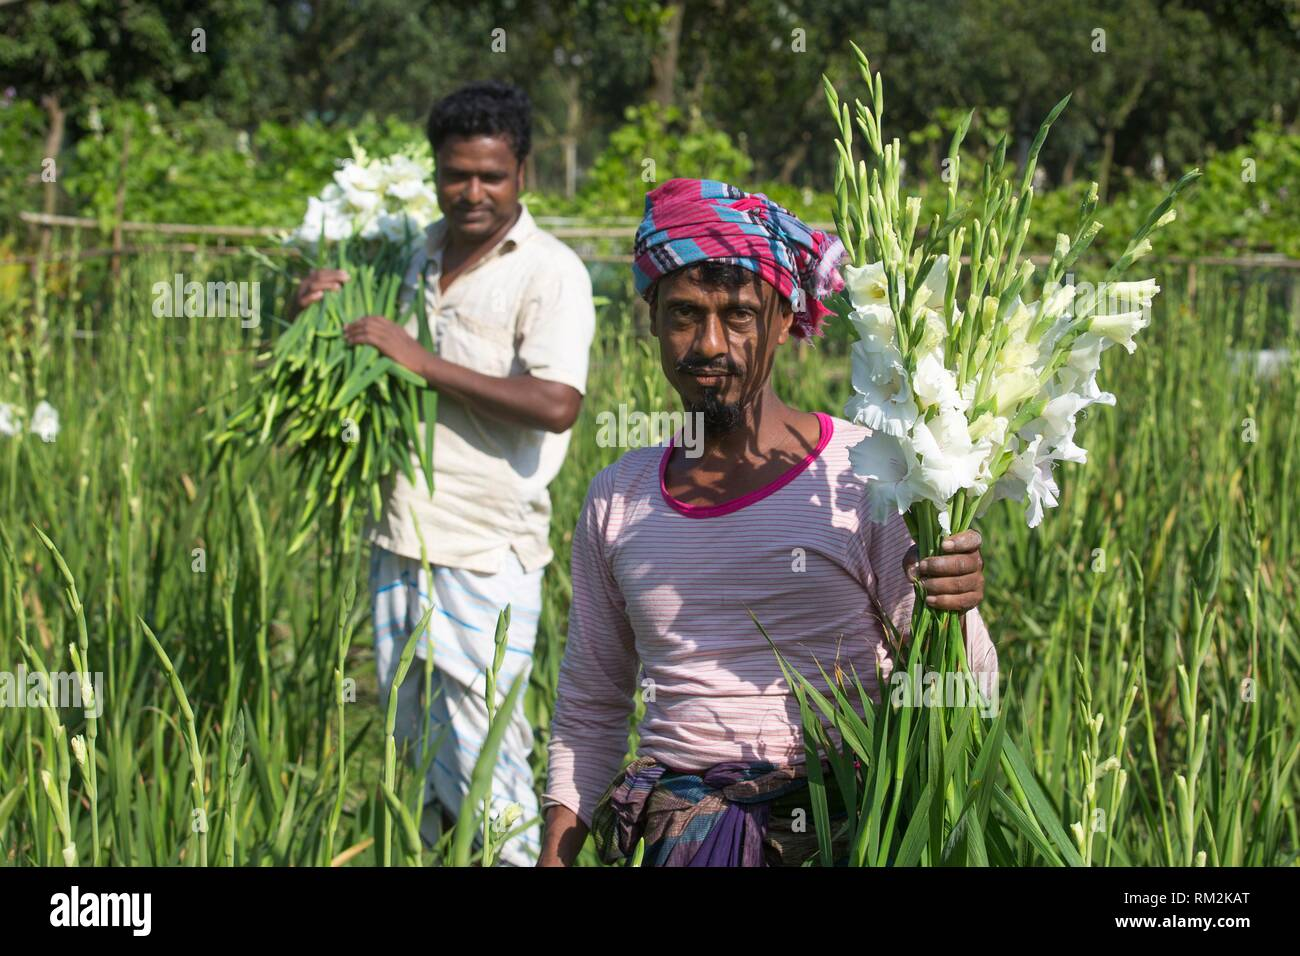 Gladiolus grows all the year and thatâ.s because its Profitable cultivation of gladiolus flower is gaining popularity among farmers in the district Stock Photo